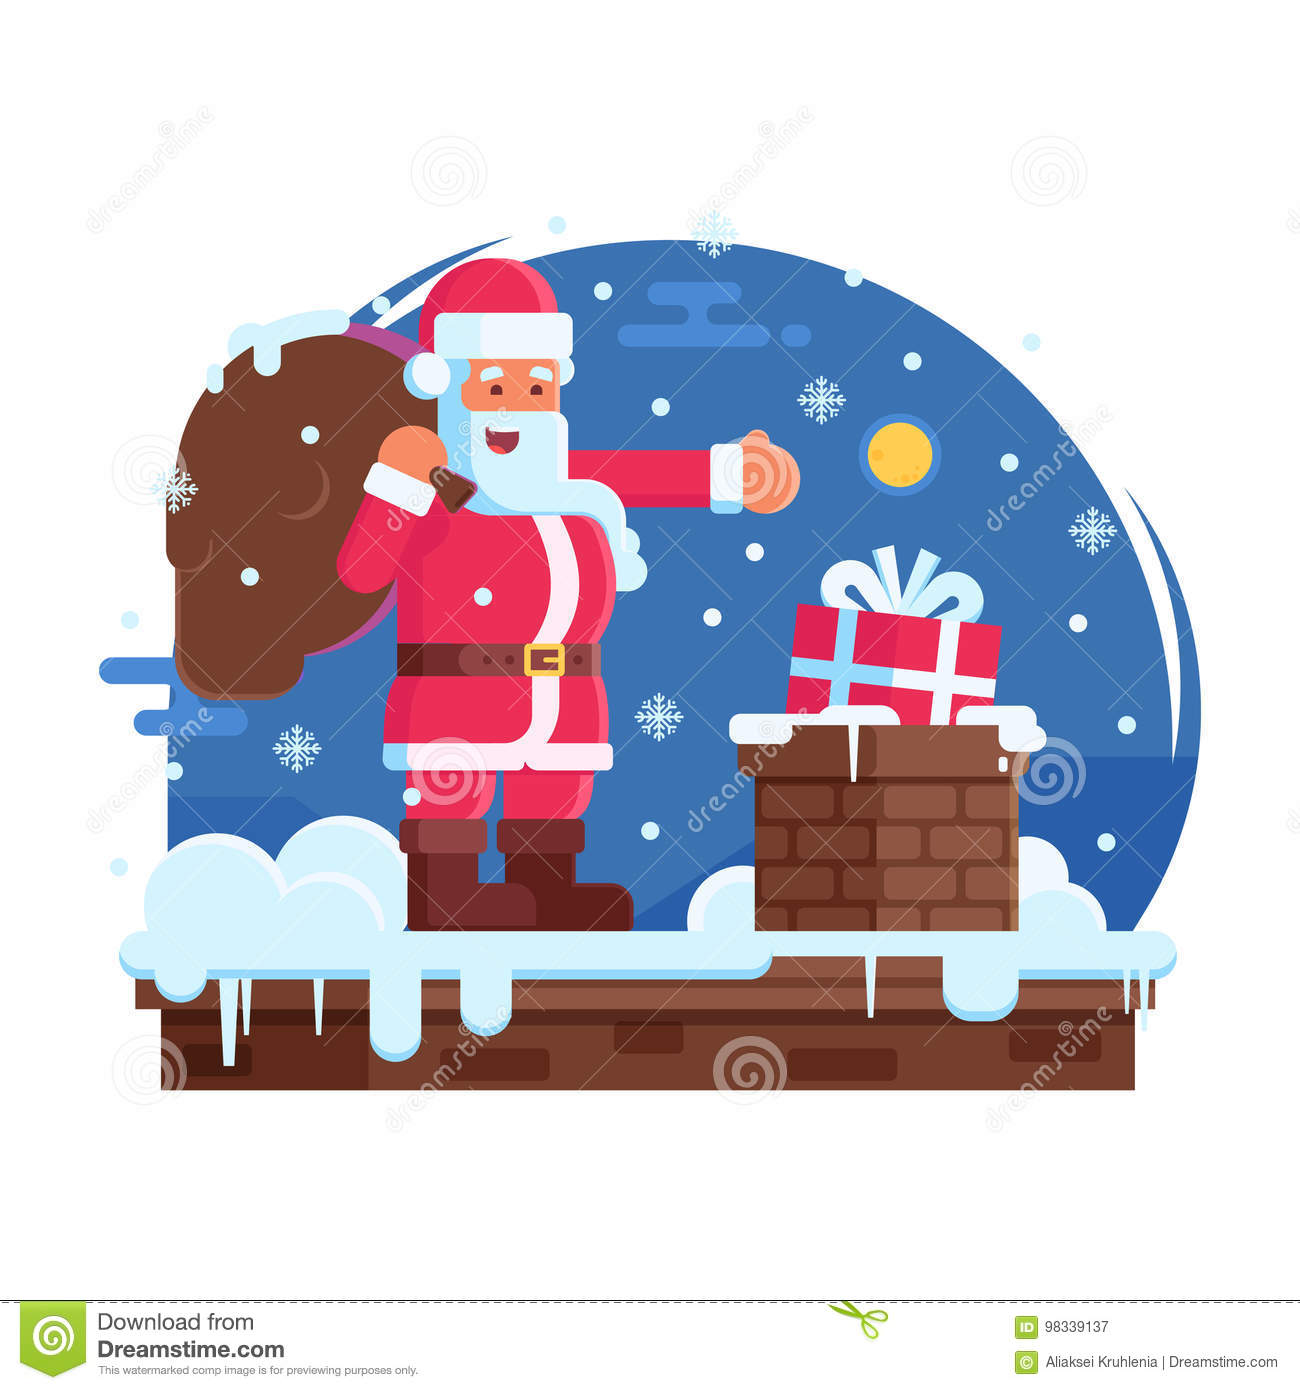 101d333e Happy Santa Claus with bag putting gift box in a chimney. Merry Christmas  scene with cartoon Santa standing on house top with gift under snowfall.